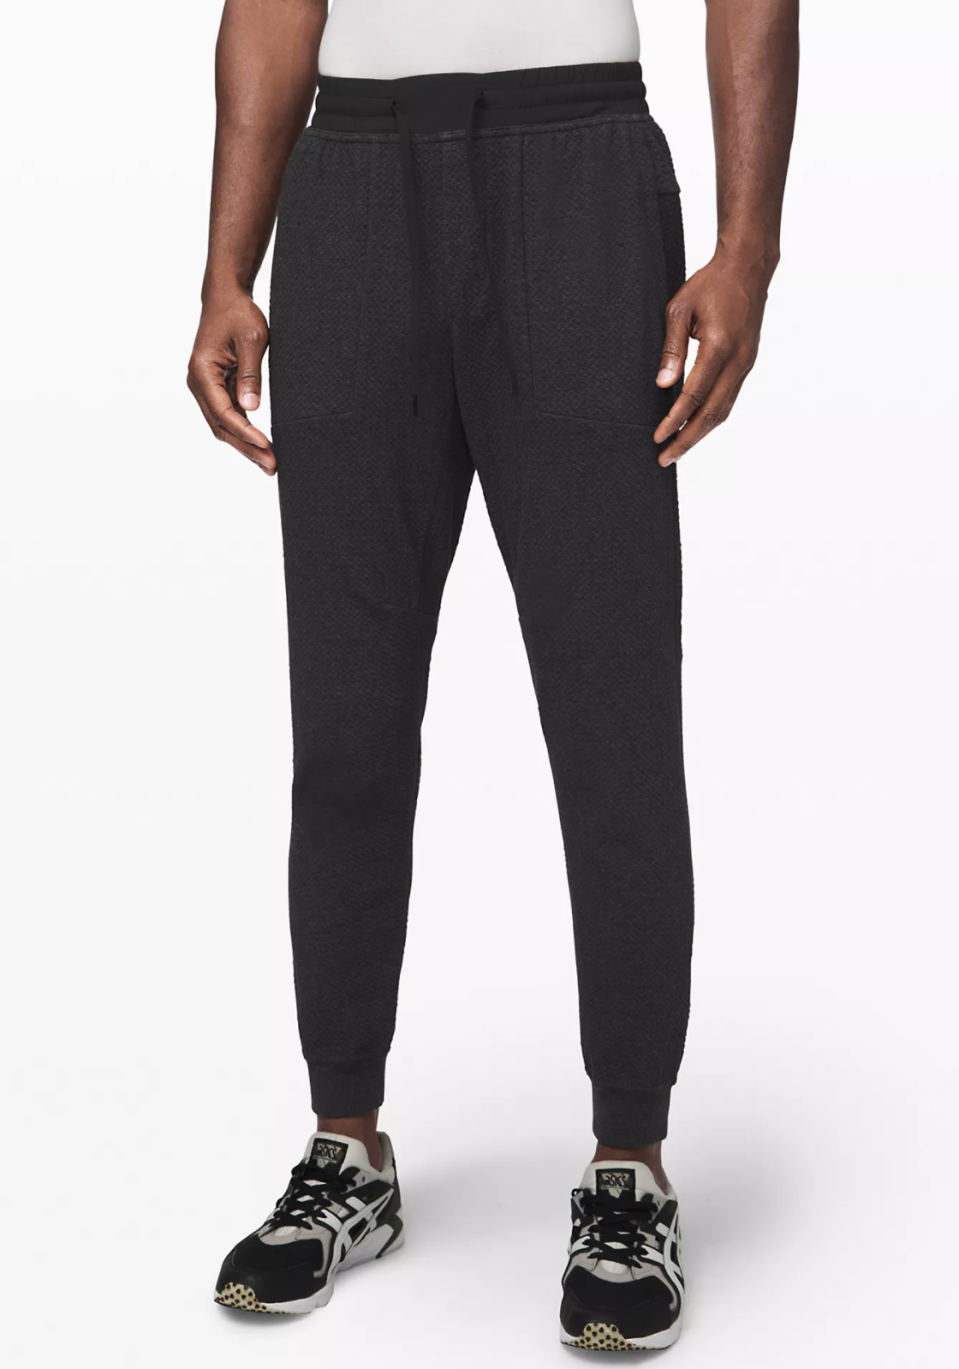 At Ease Jogger - Lululemon, $138.